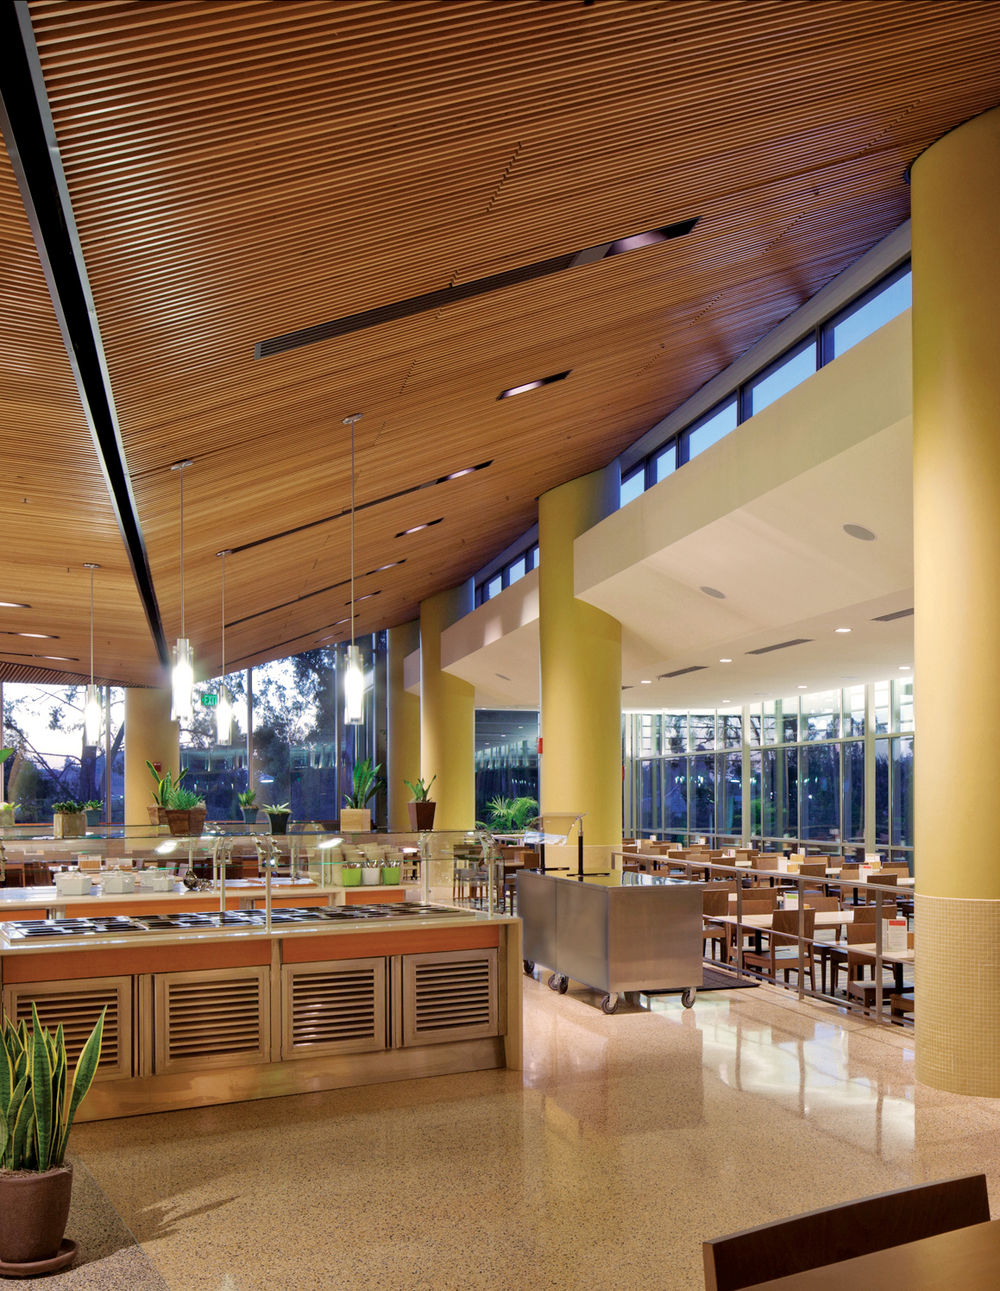 A UCLA cafeteria that would be part of the athletes village in 2024.